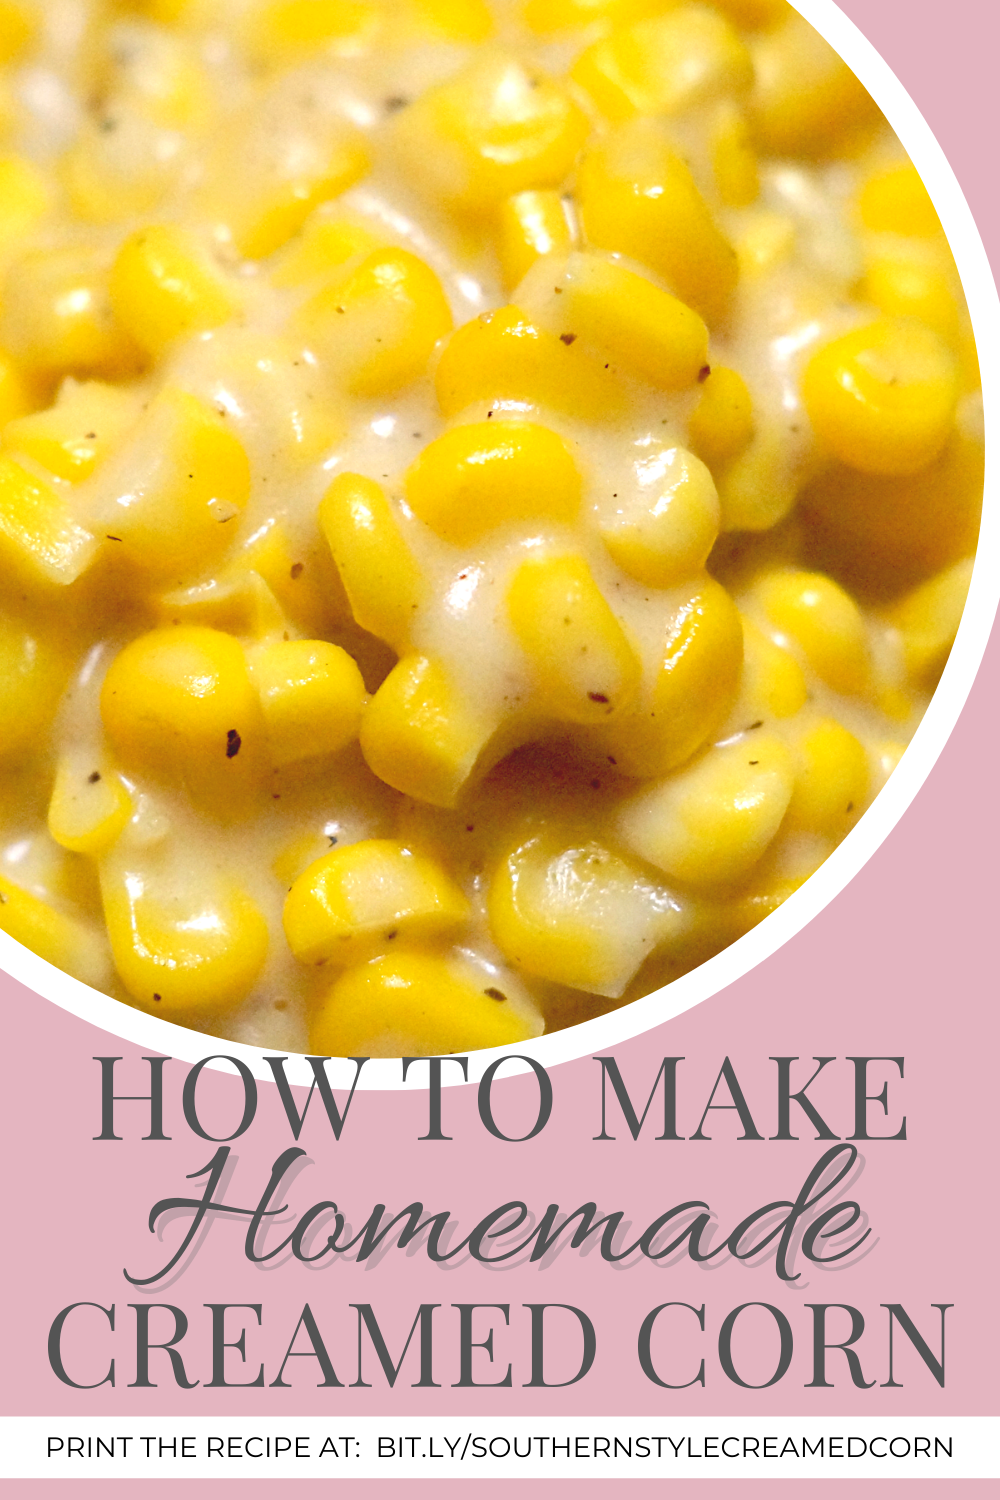 How to Make Homemade Creamed Corn - A Southern Recipe